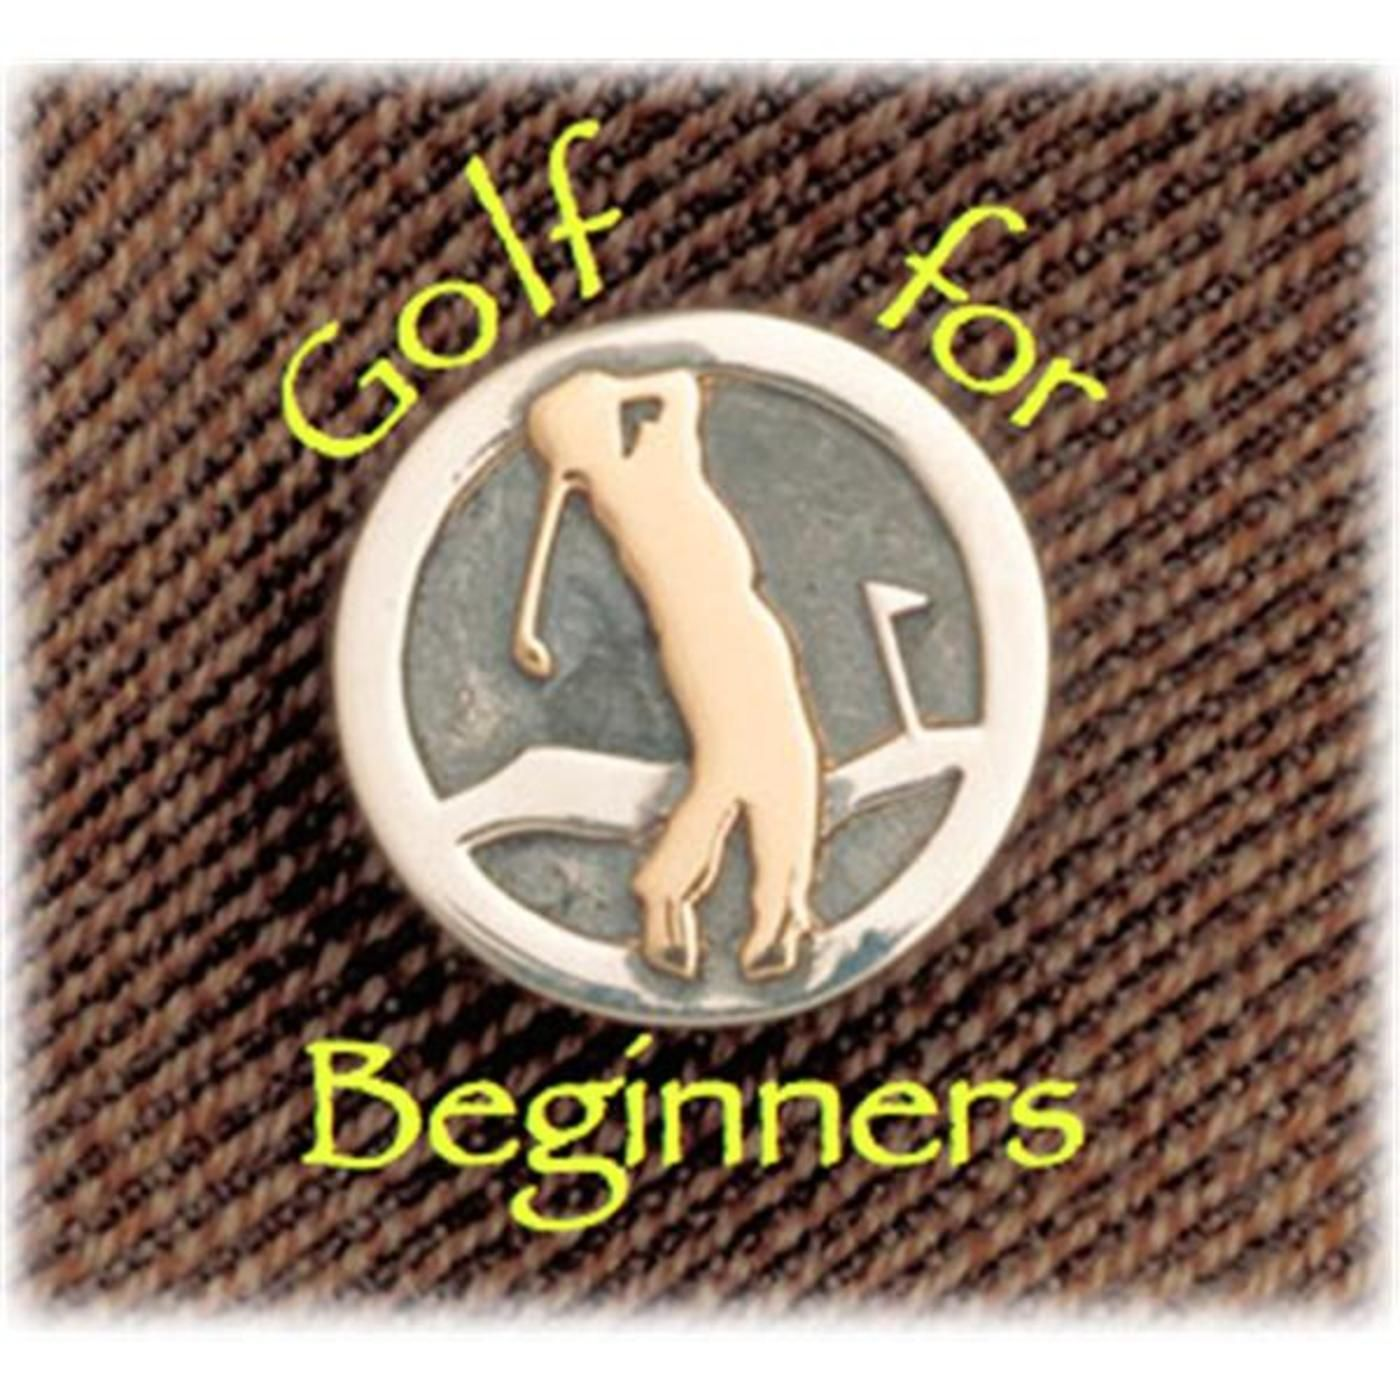 Golf for Beginners, because we're always learning